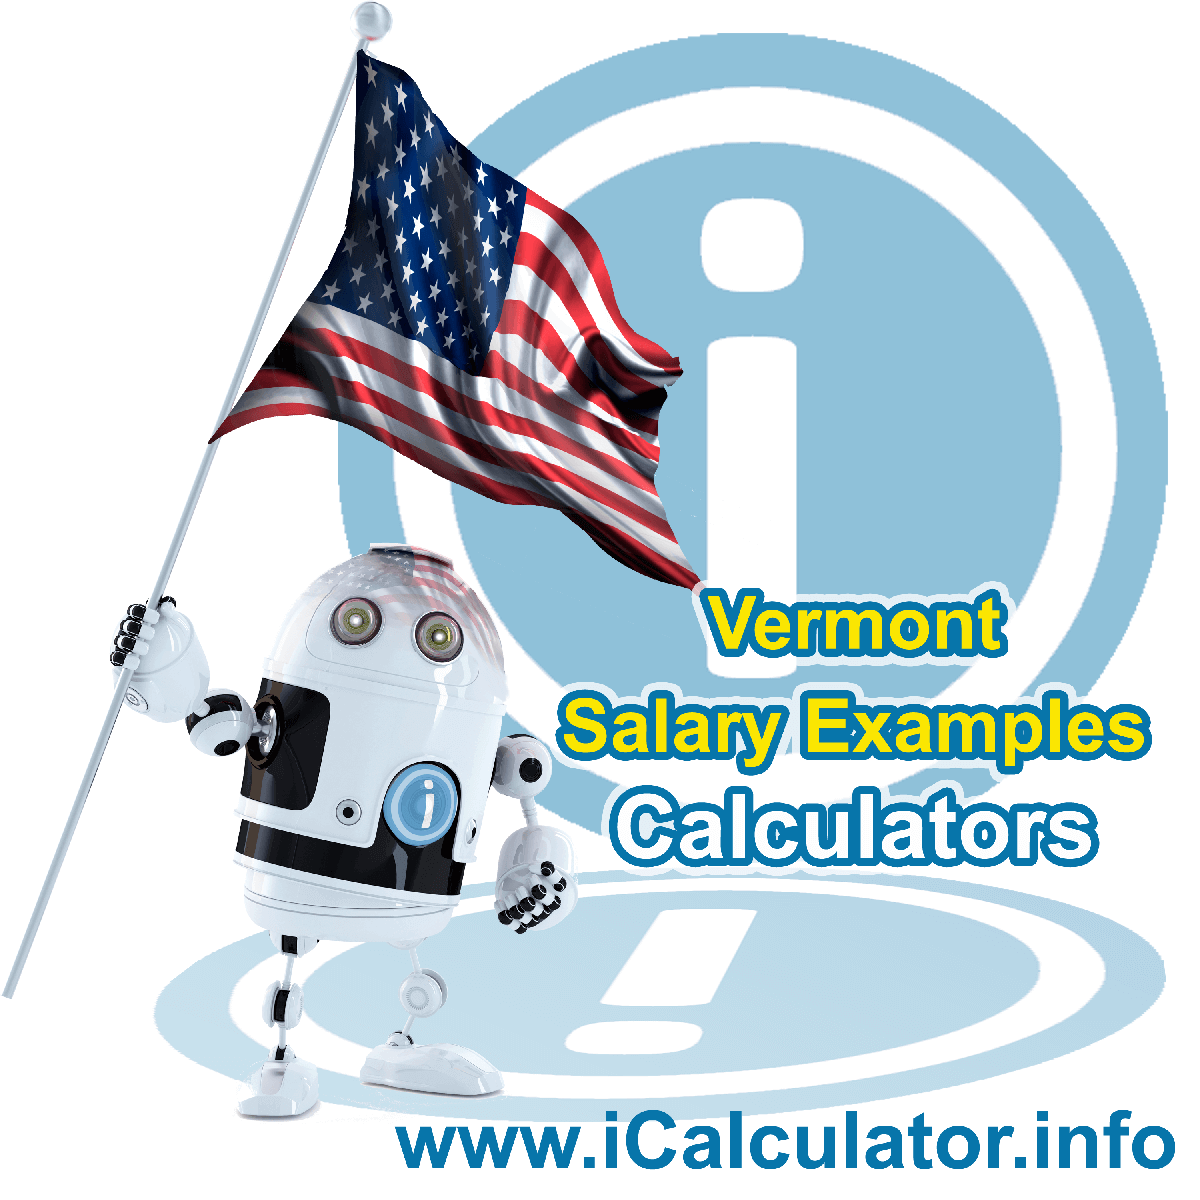 Vermont Salary Example for $240.00 in 2020 | iCalculator | $240.00 salary example for employee and employer paying Vermont State tincome taxes. Detailed salary after tax calculation including Vermont State Tax, Federal State Tax, Medicare Deductions, Social Security, Capital Gains and other income tax and salary deductions complete with supporting Vermont state tax tables